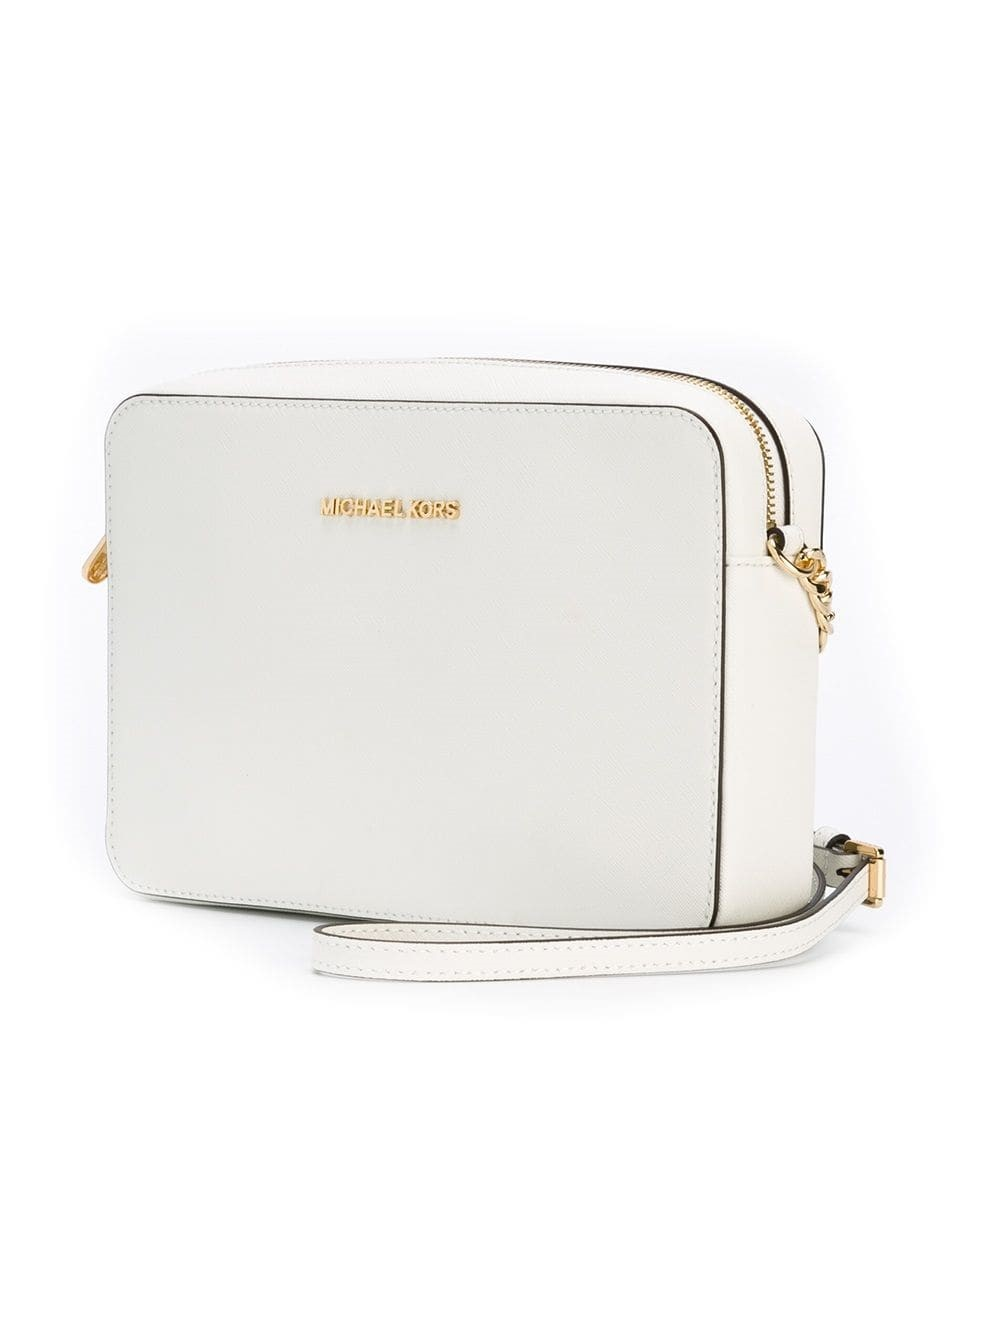 28ceaf96bf94d michael kors mk CROSS BODY BAG available on montiboutique.com - 23914